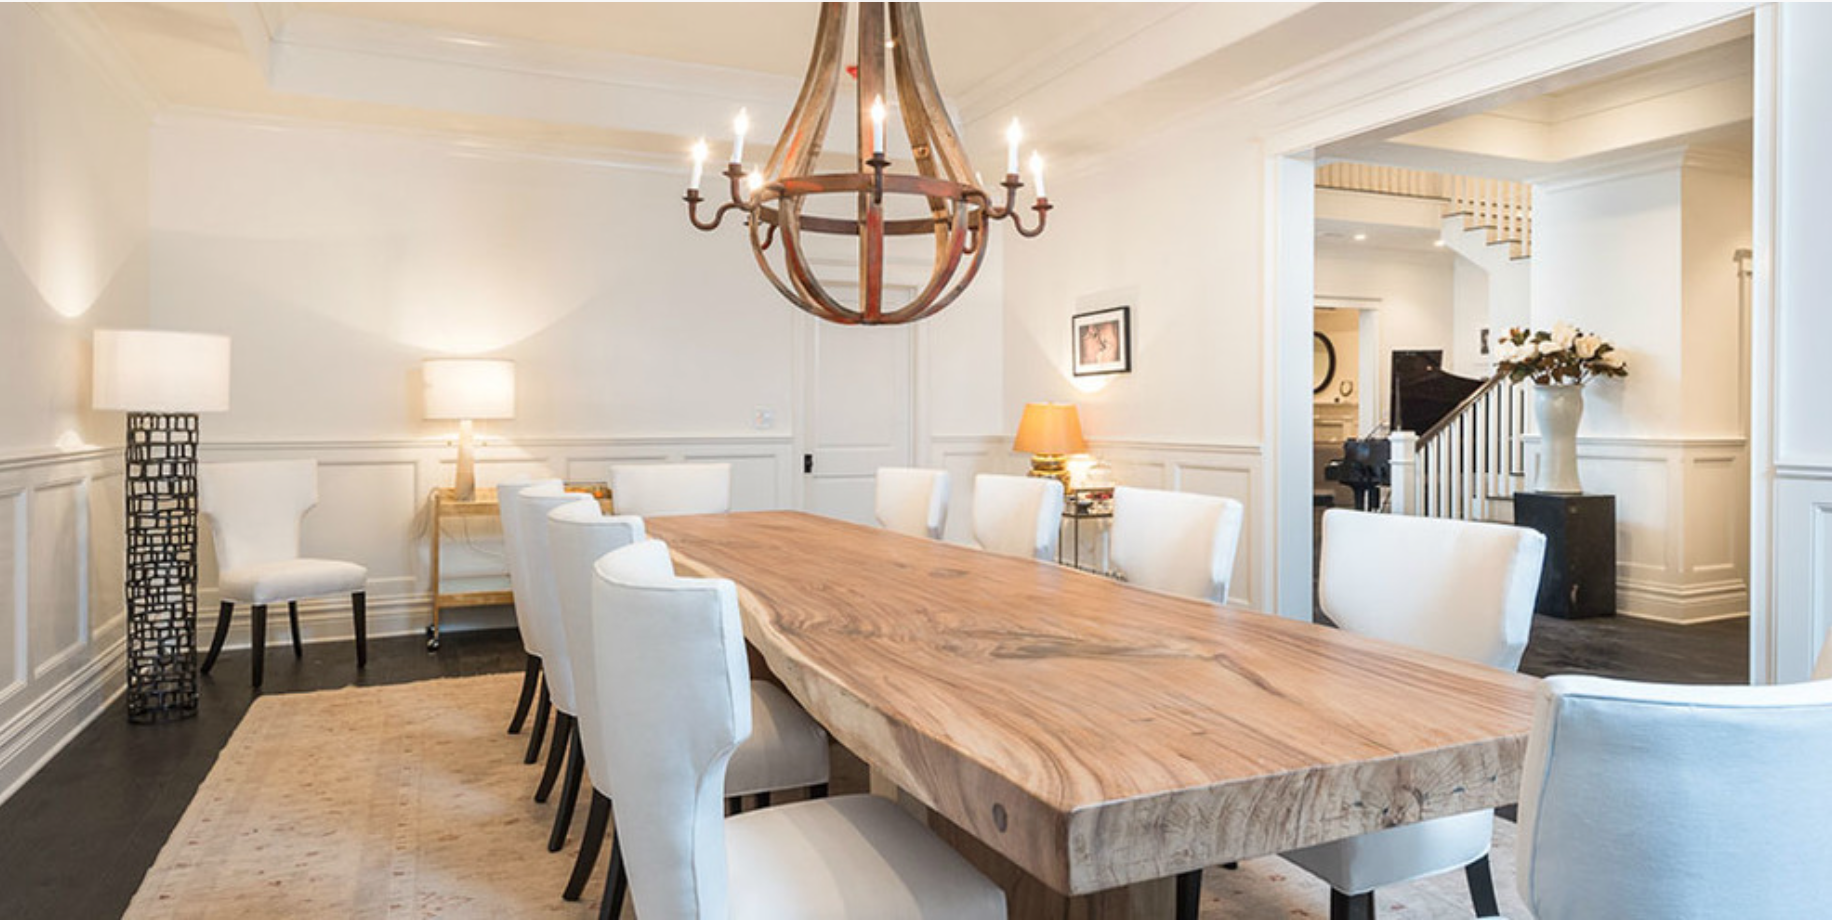 Solid Wood Thick Dining Table / Herman Furniture Singapore